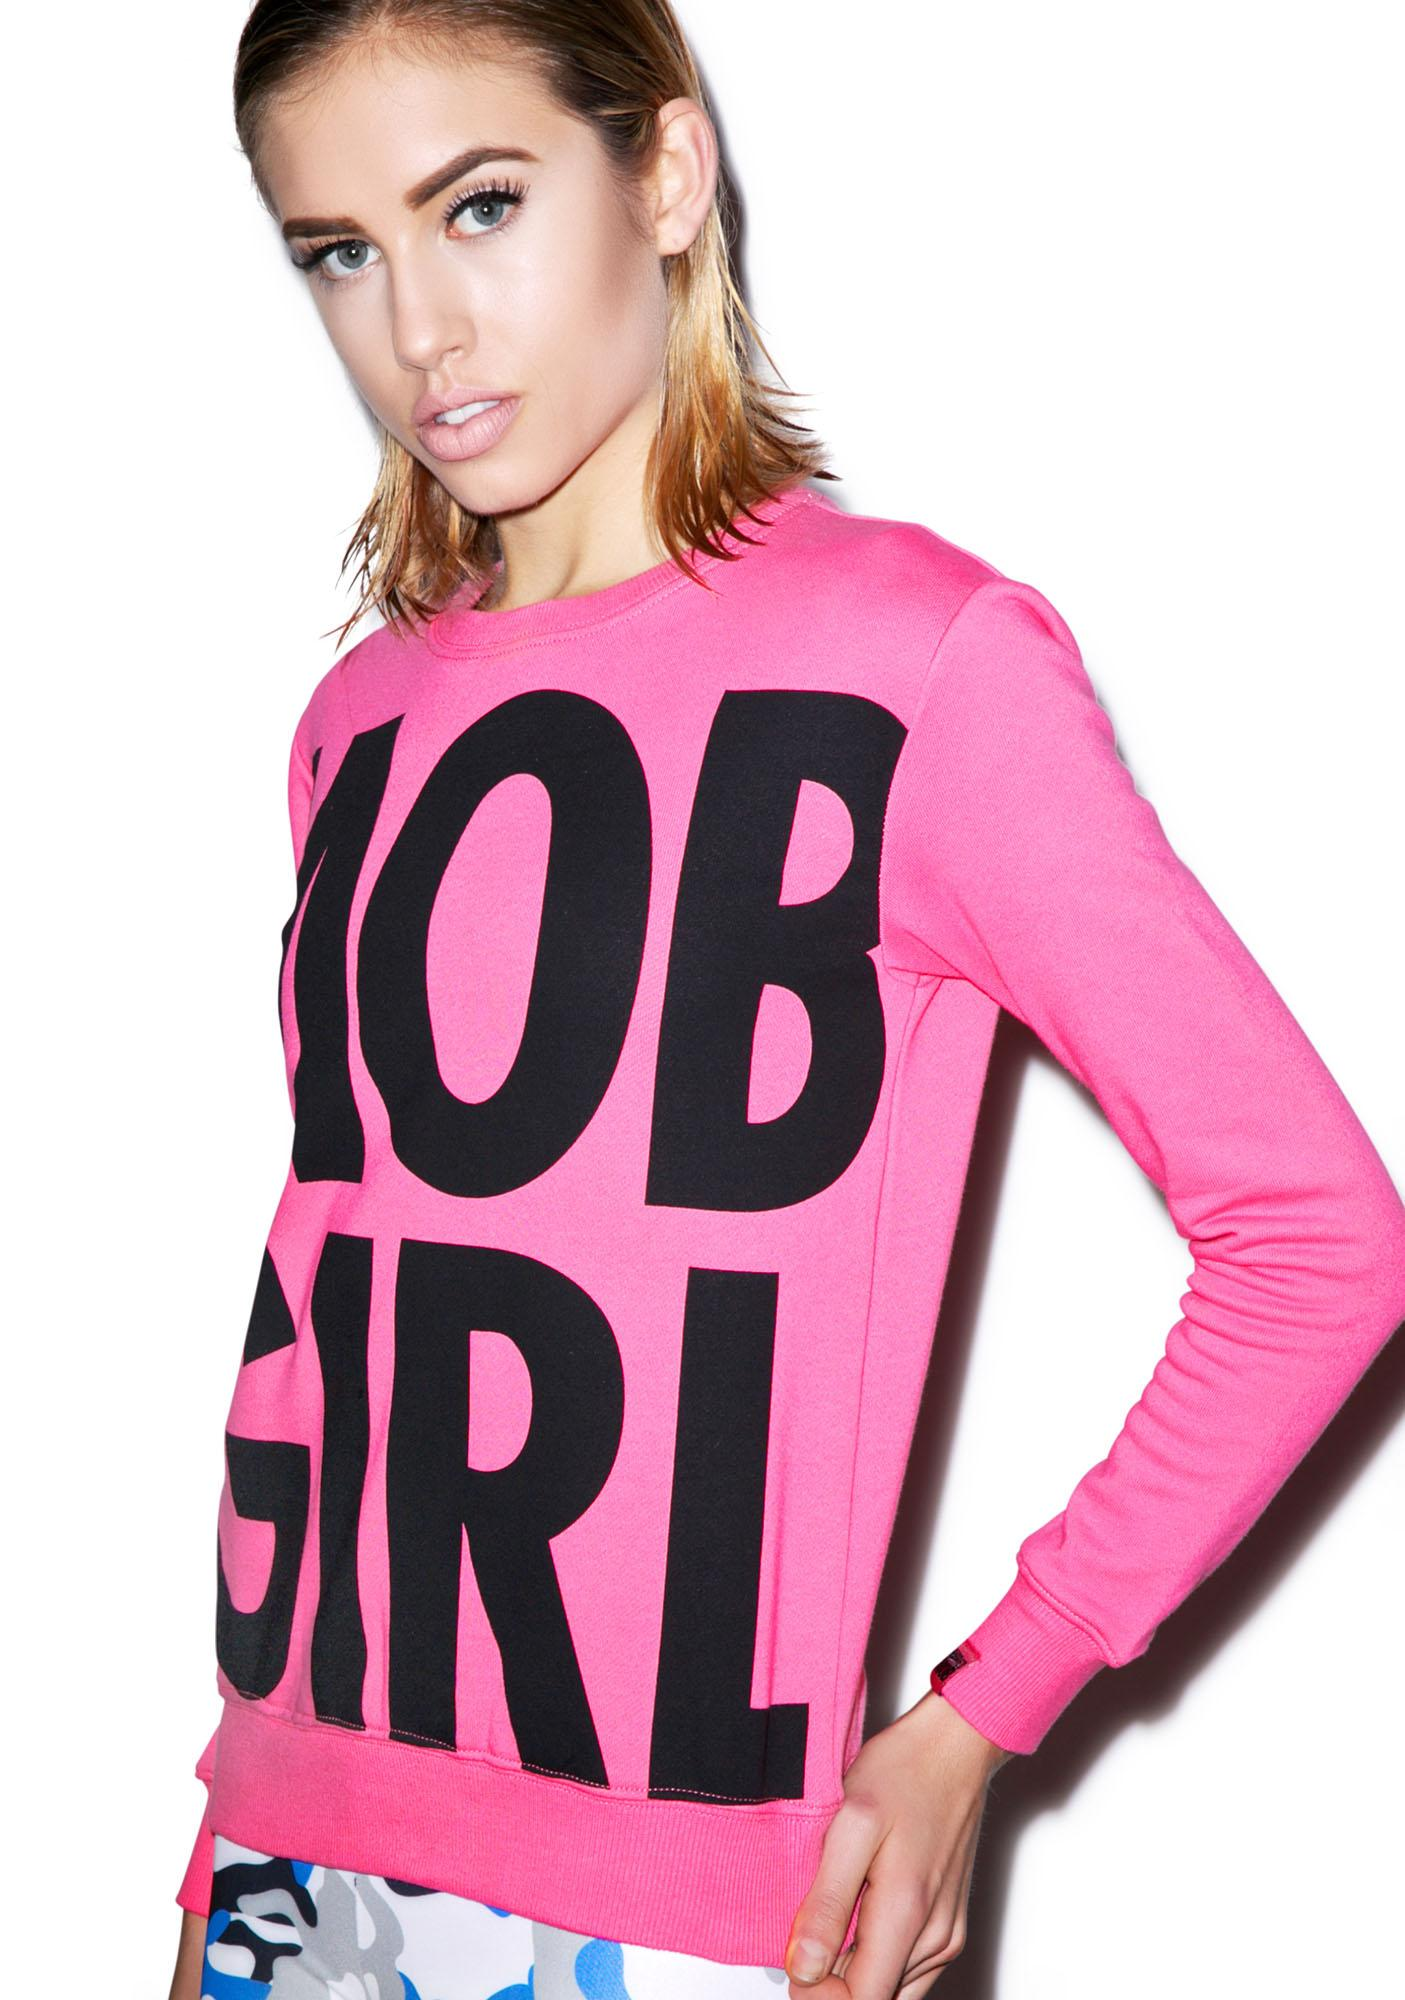 Married to the Mob MOB Girl Crewneck